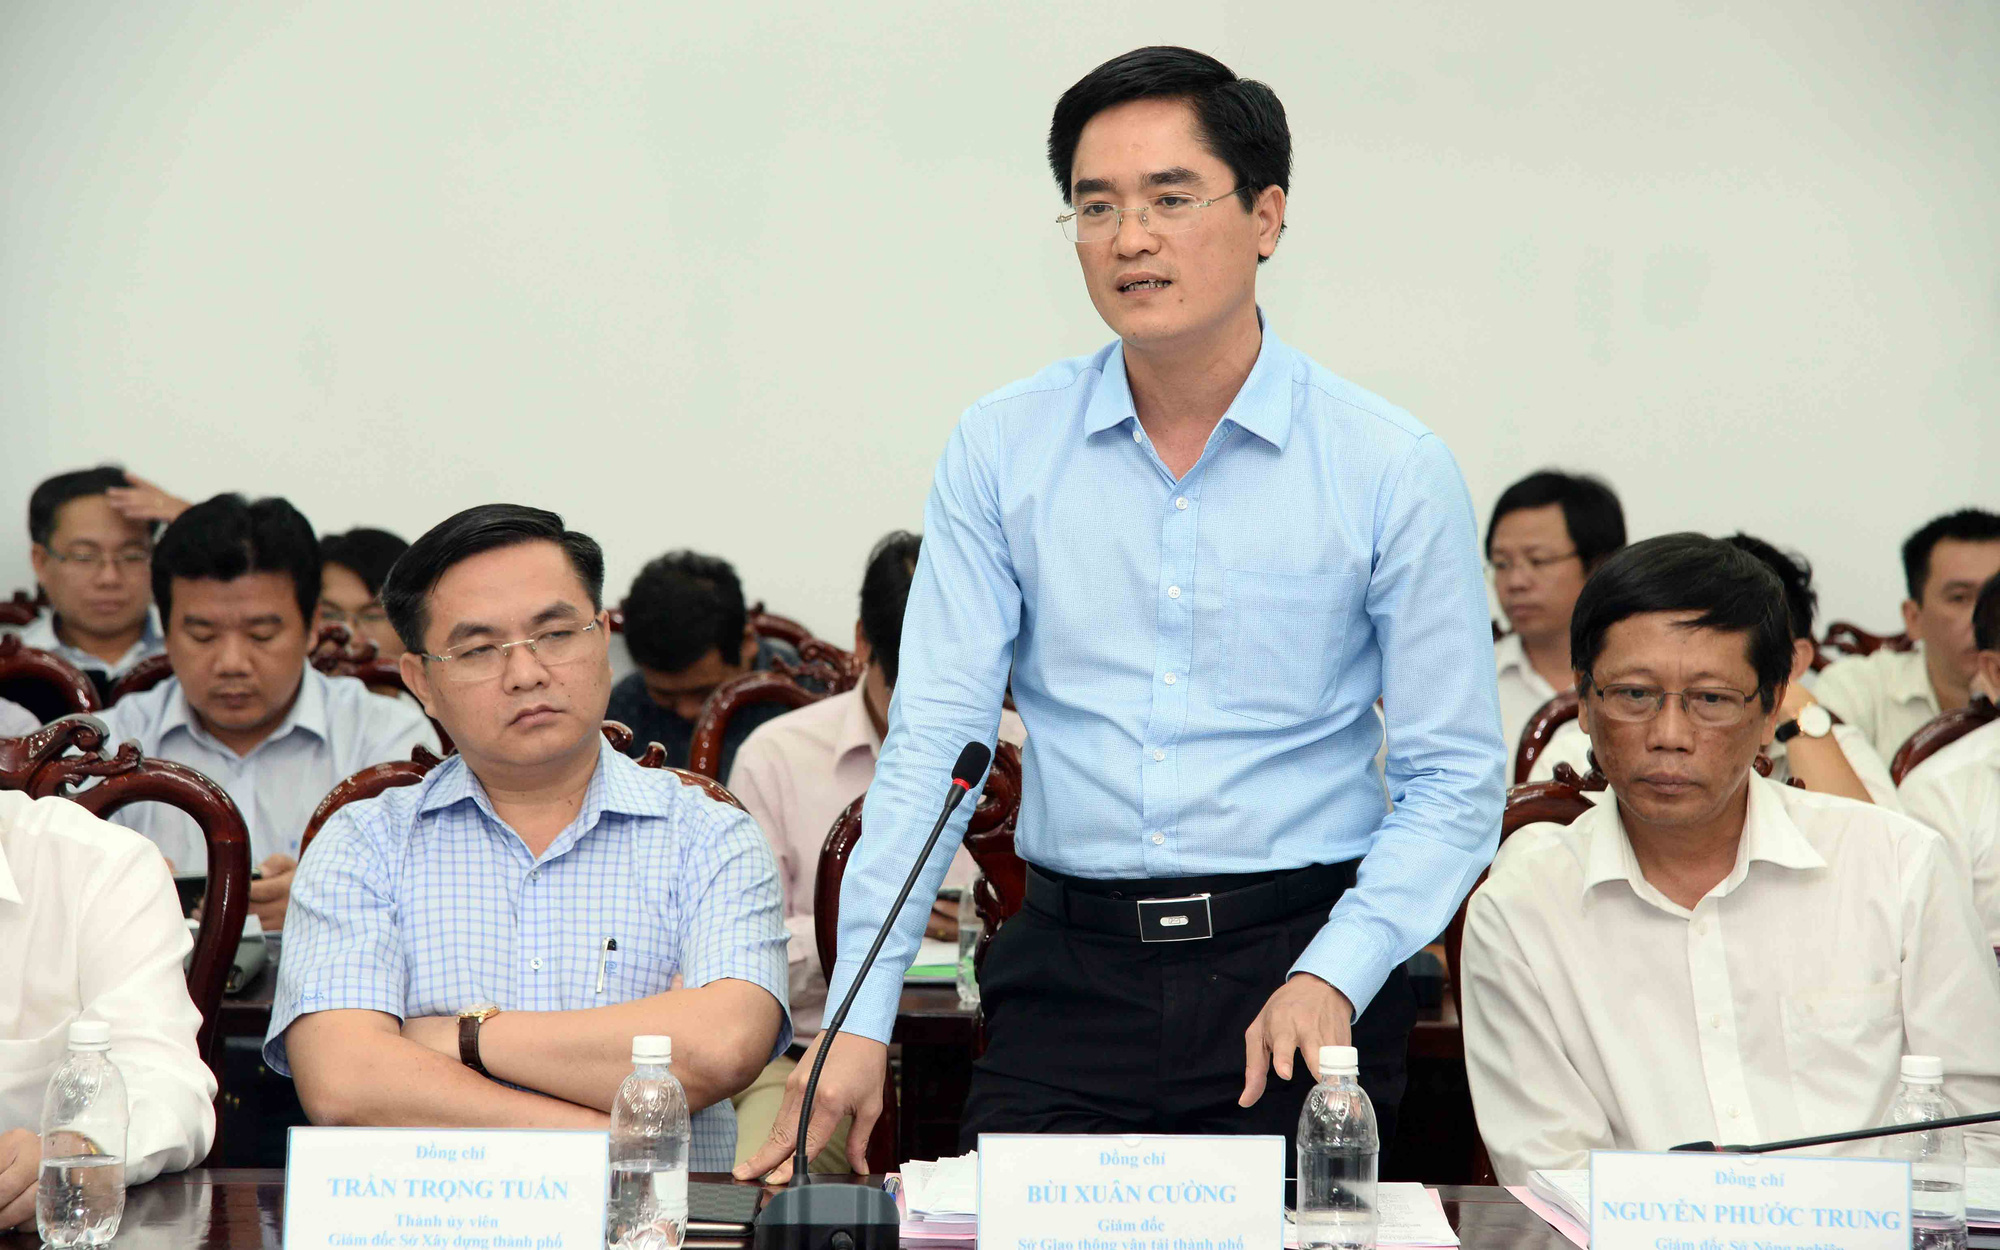 Tran Quang Lam, director of the Ho Chi Minh City Department of Transport